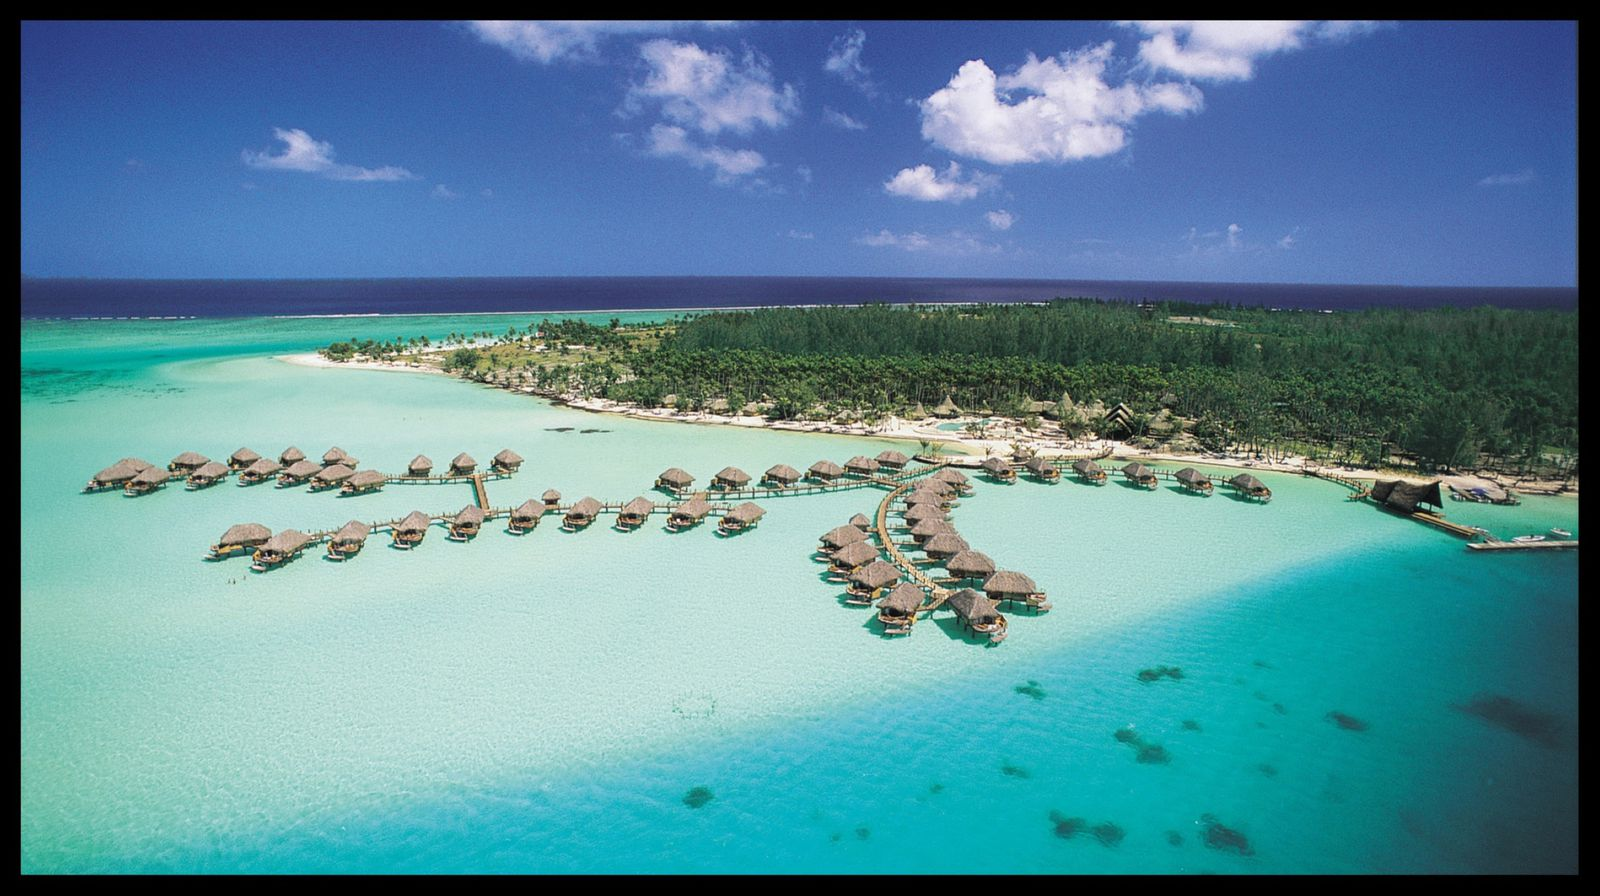 Notre Hotel : PEARL BEACH RESORT AND SPA